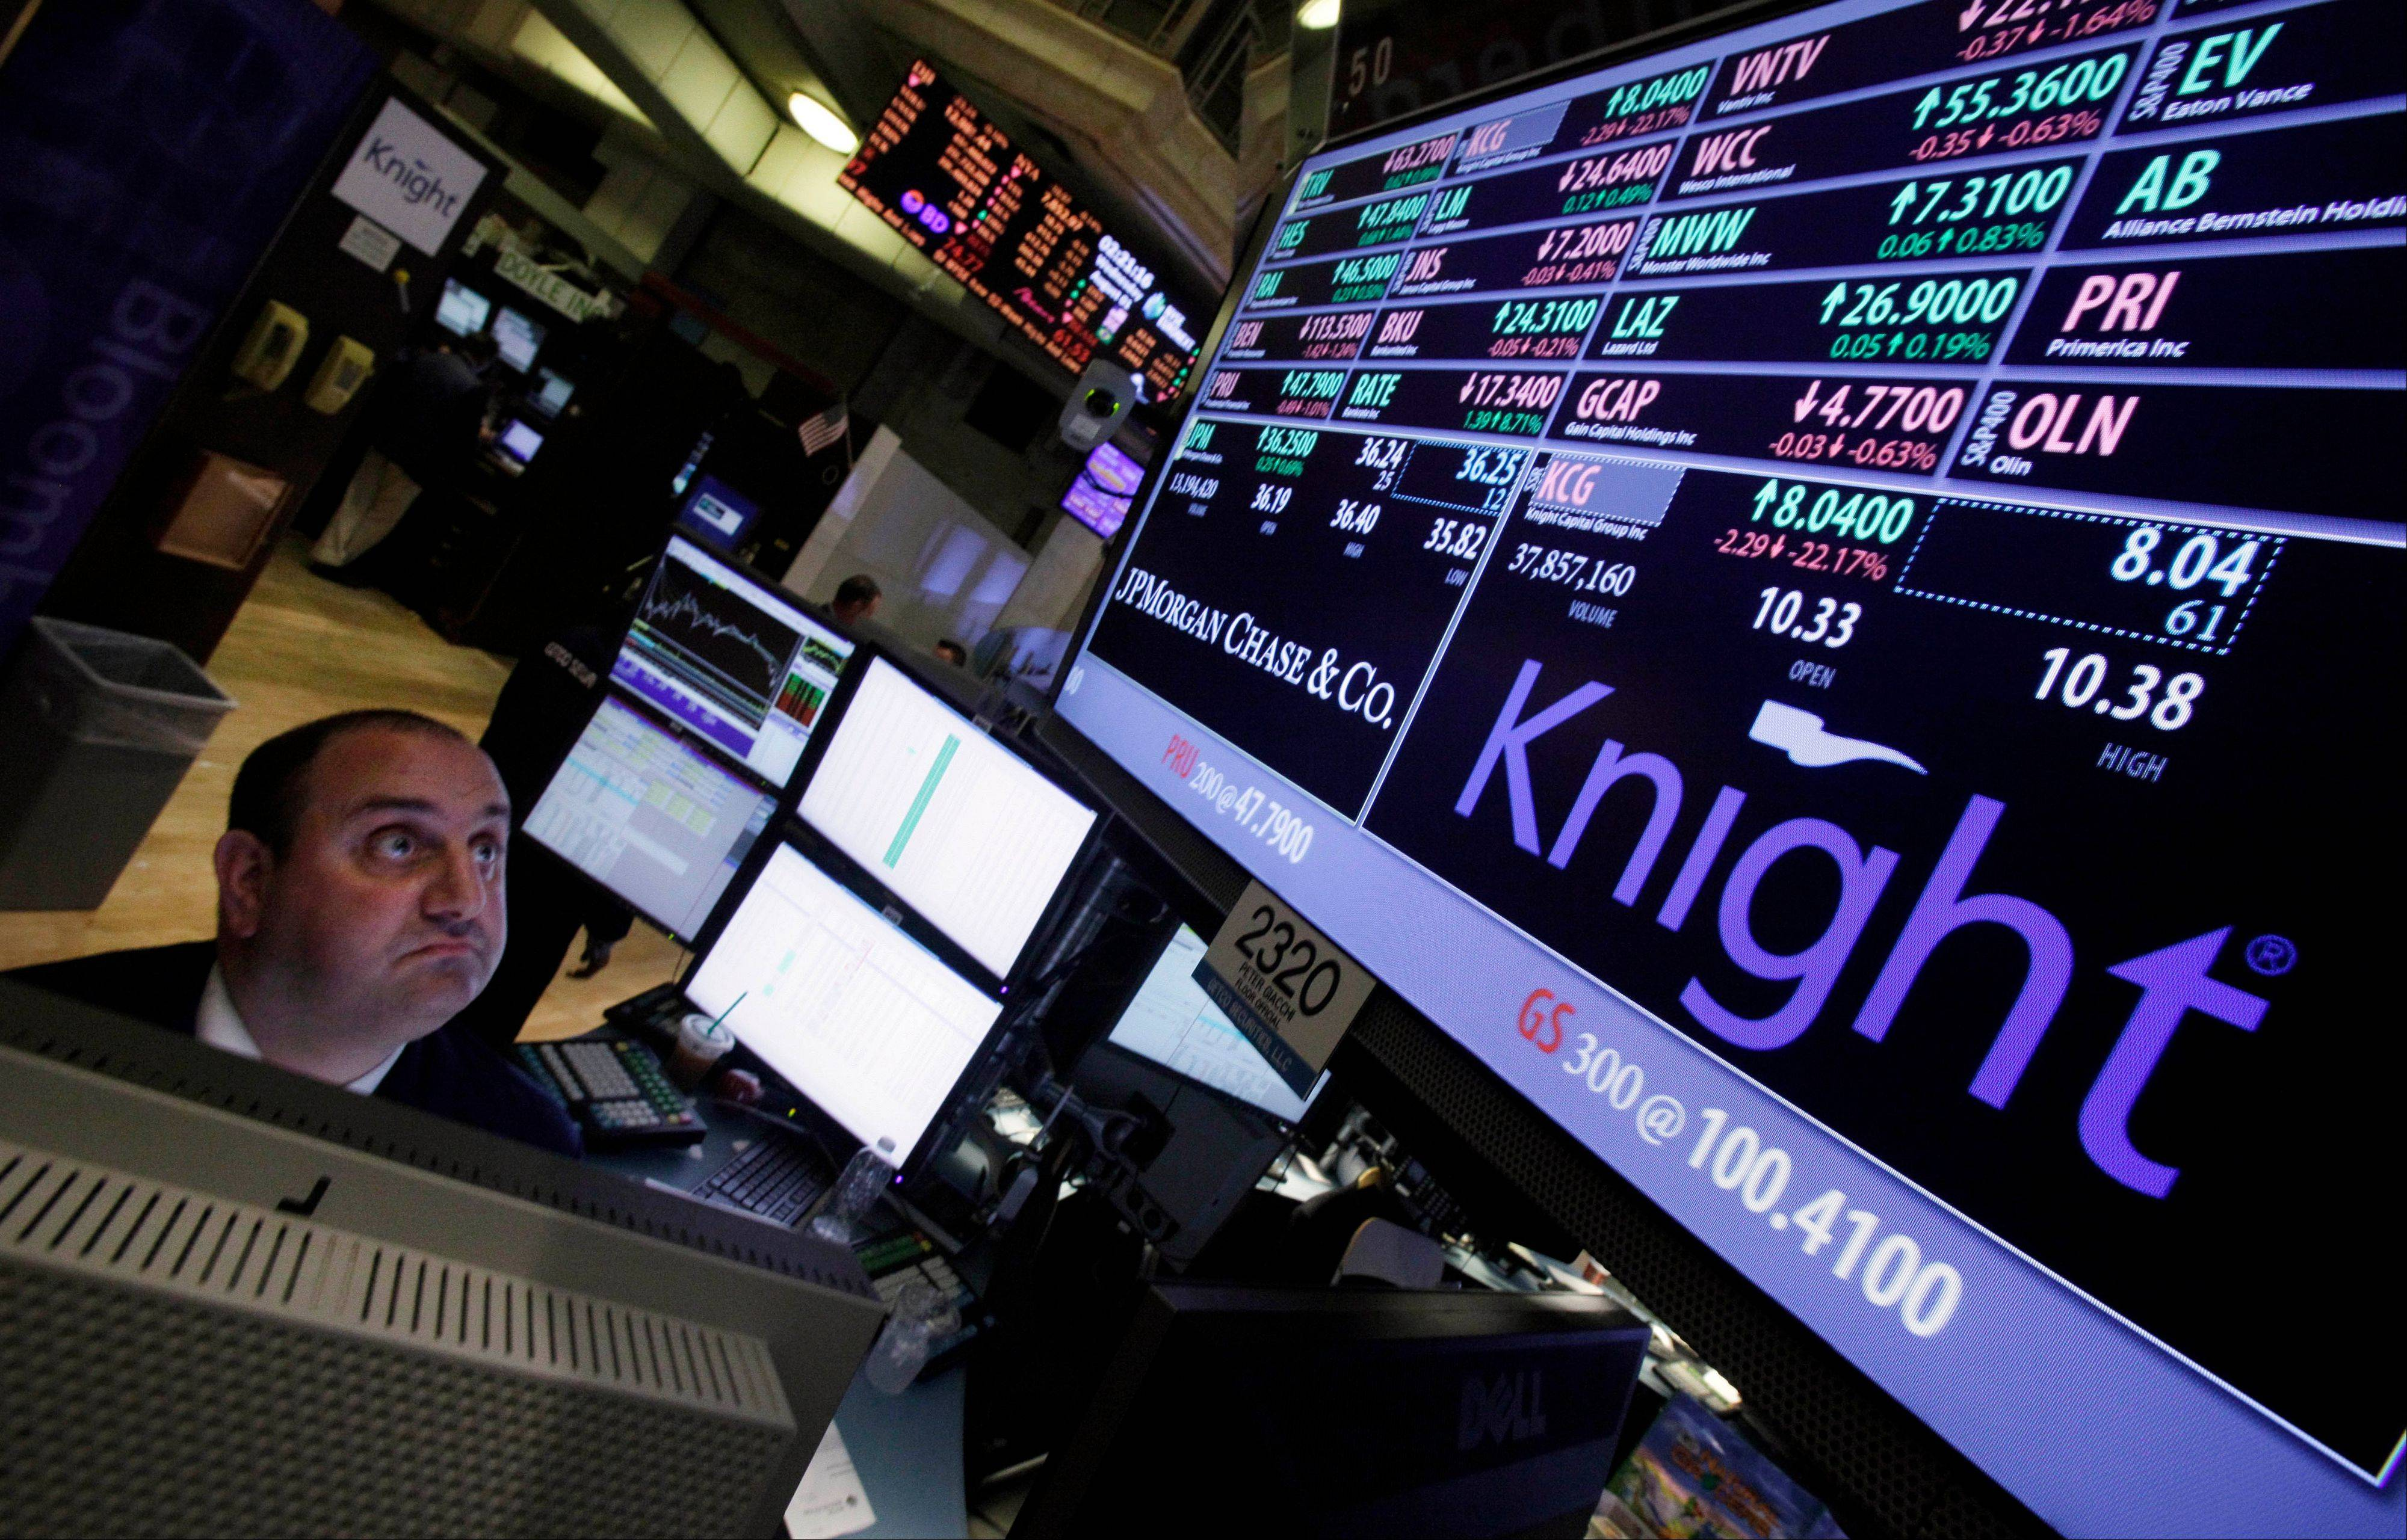 Technical issues with Knight Capitol Group stock trades on Wednesday came back to haunt the firm badly on Thursday when its stock plummeted.